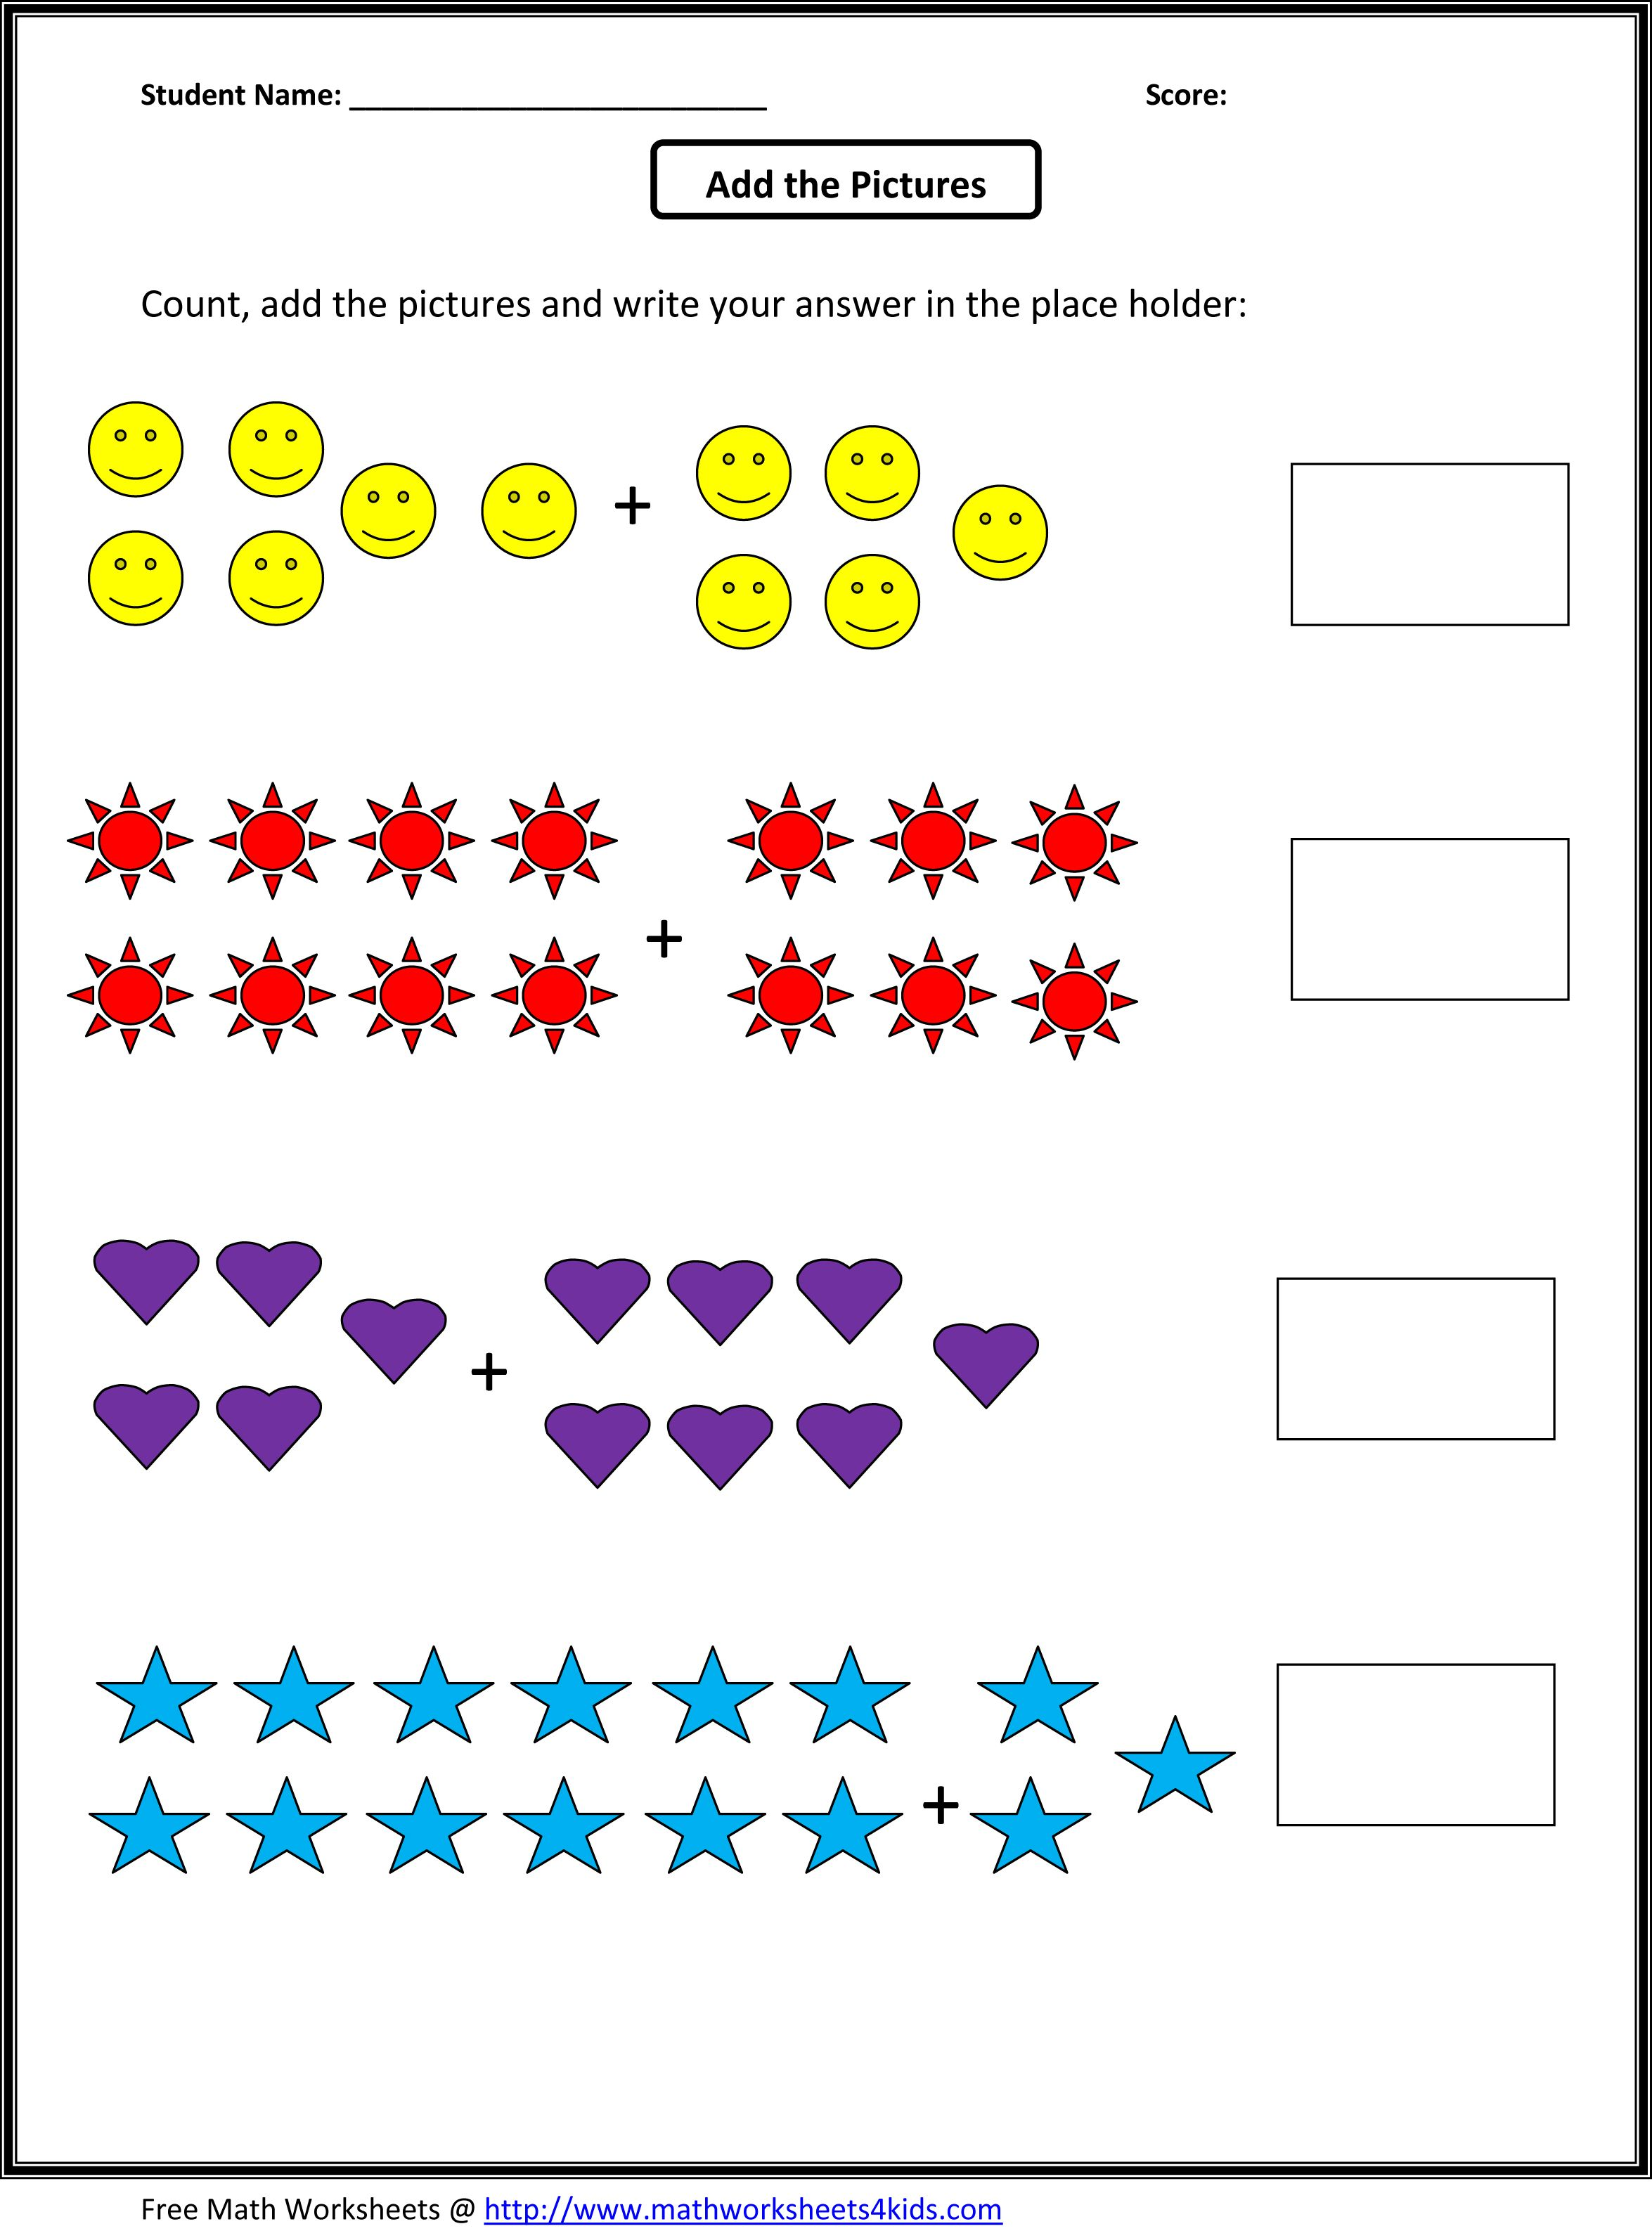 grade 1 addition math worksheets – Math First Grade Worksheets